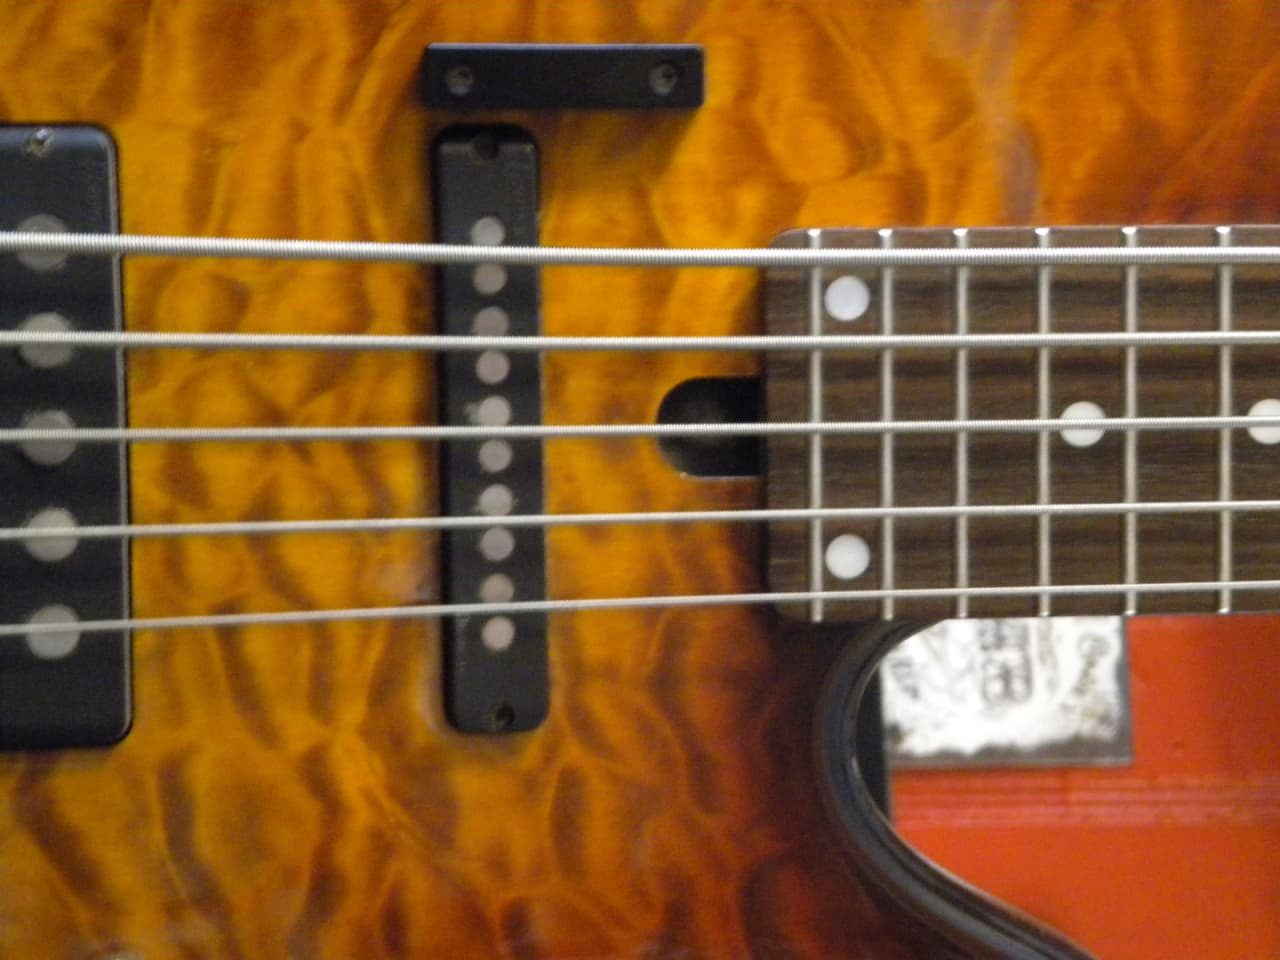 Fine Dimarzio Wiring Tall Telecaster 5 Way Switch Wiring Diagram Regular Viper Remote Start Wiring Two Humbuckers 5 Way Switch Young Bulldog Car Wiring Diagrams ColouredFree Tsb Ibanez Road Gear 505 5 String Bass Quilted Maple Sunburst | Reverb